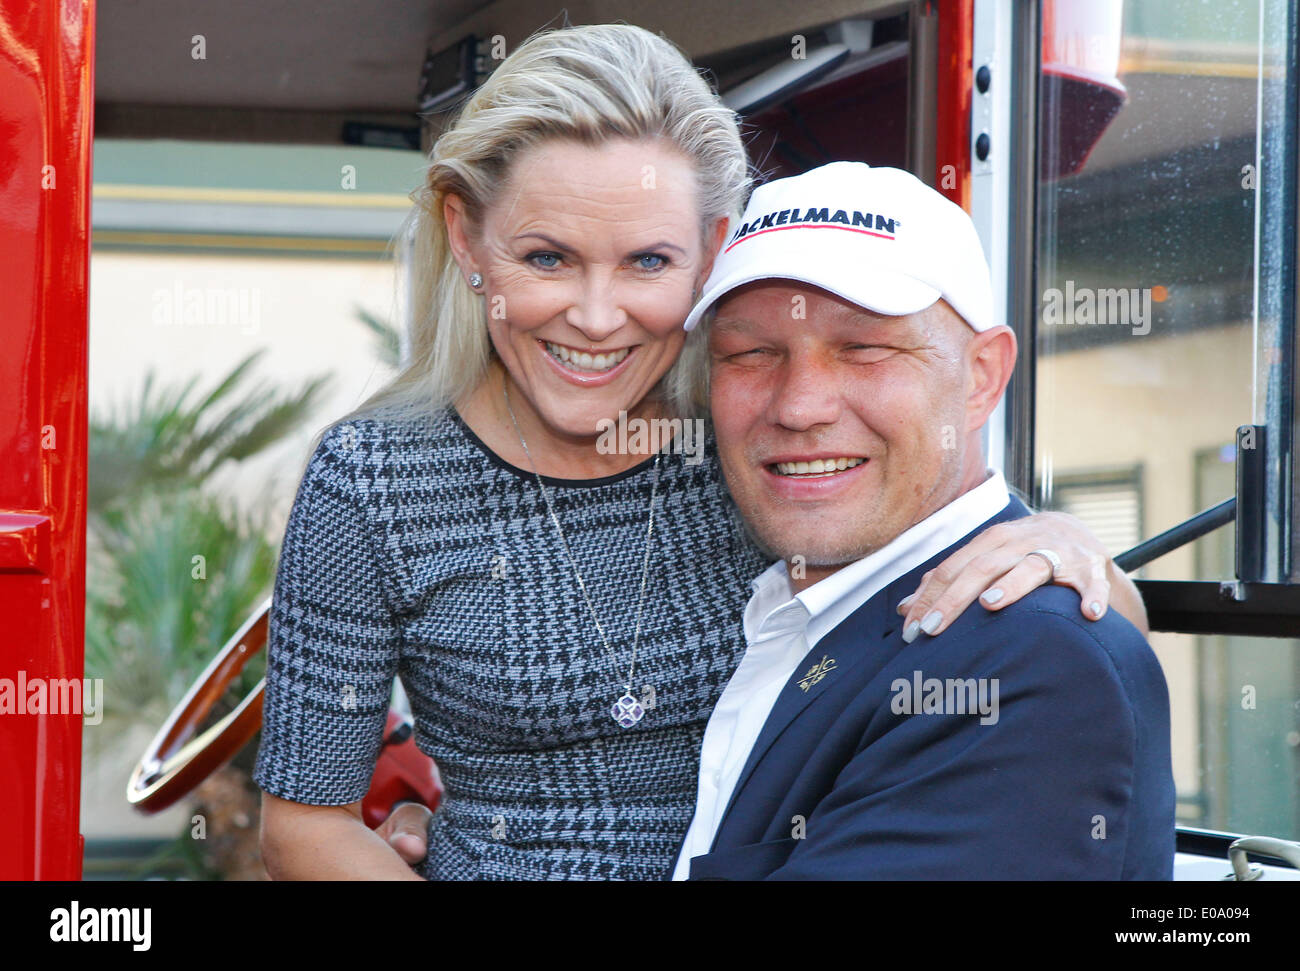 Herbolzheim, Germany - May 5, 2014: Eagles Charity Golf Cup and Gala at Golfclub Breisgau and Europa Park, Rust with ex Boxer Axel Schulz and wife Patrizia Credit:  dpa picture alliance/Alamy Live News - Stock Image